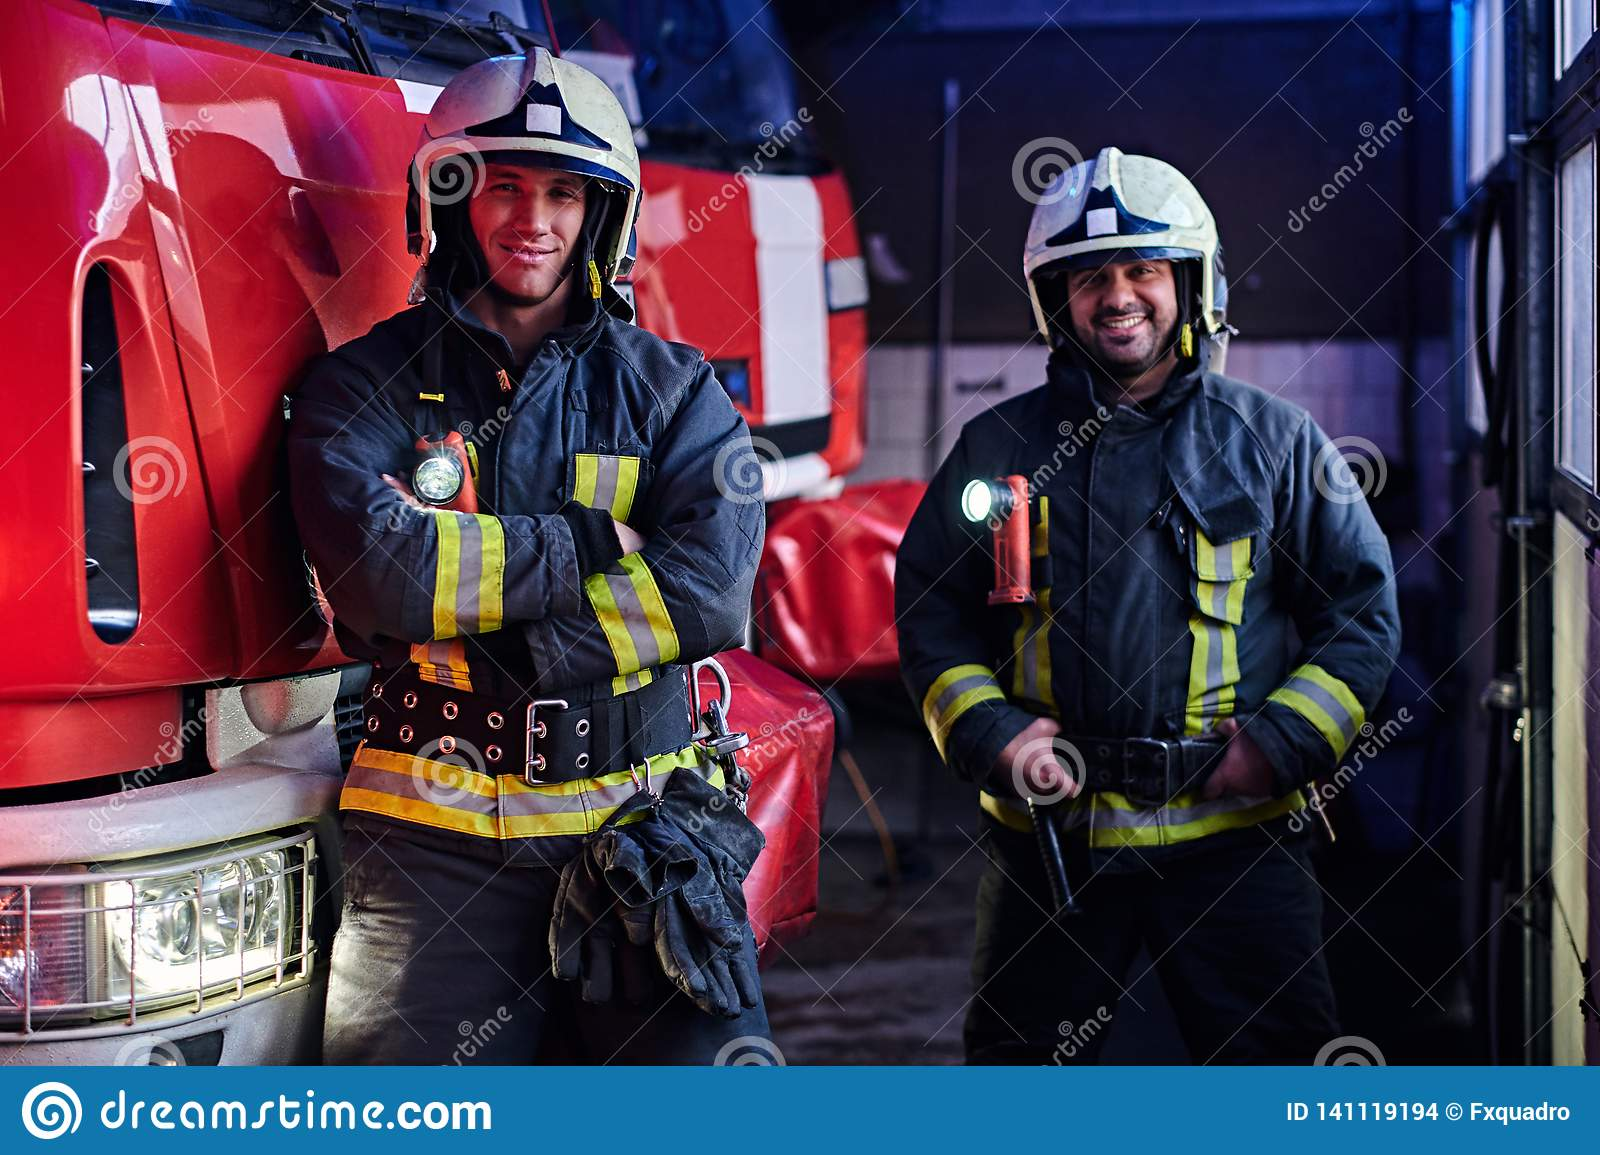 Two firemen wearing uniform standing next to a fire engine in a garage of a fire department, smiling and looking at a